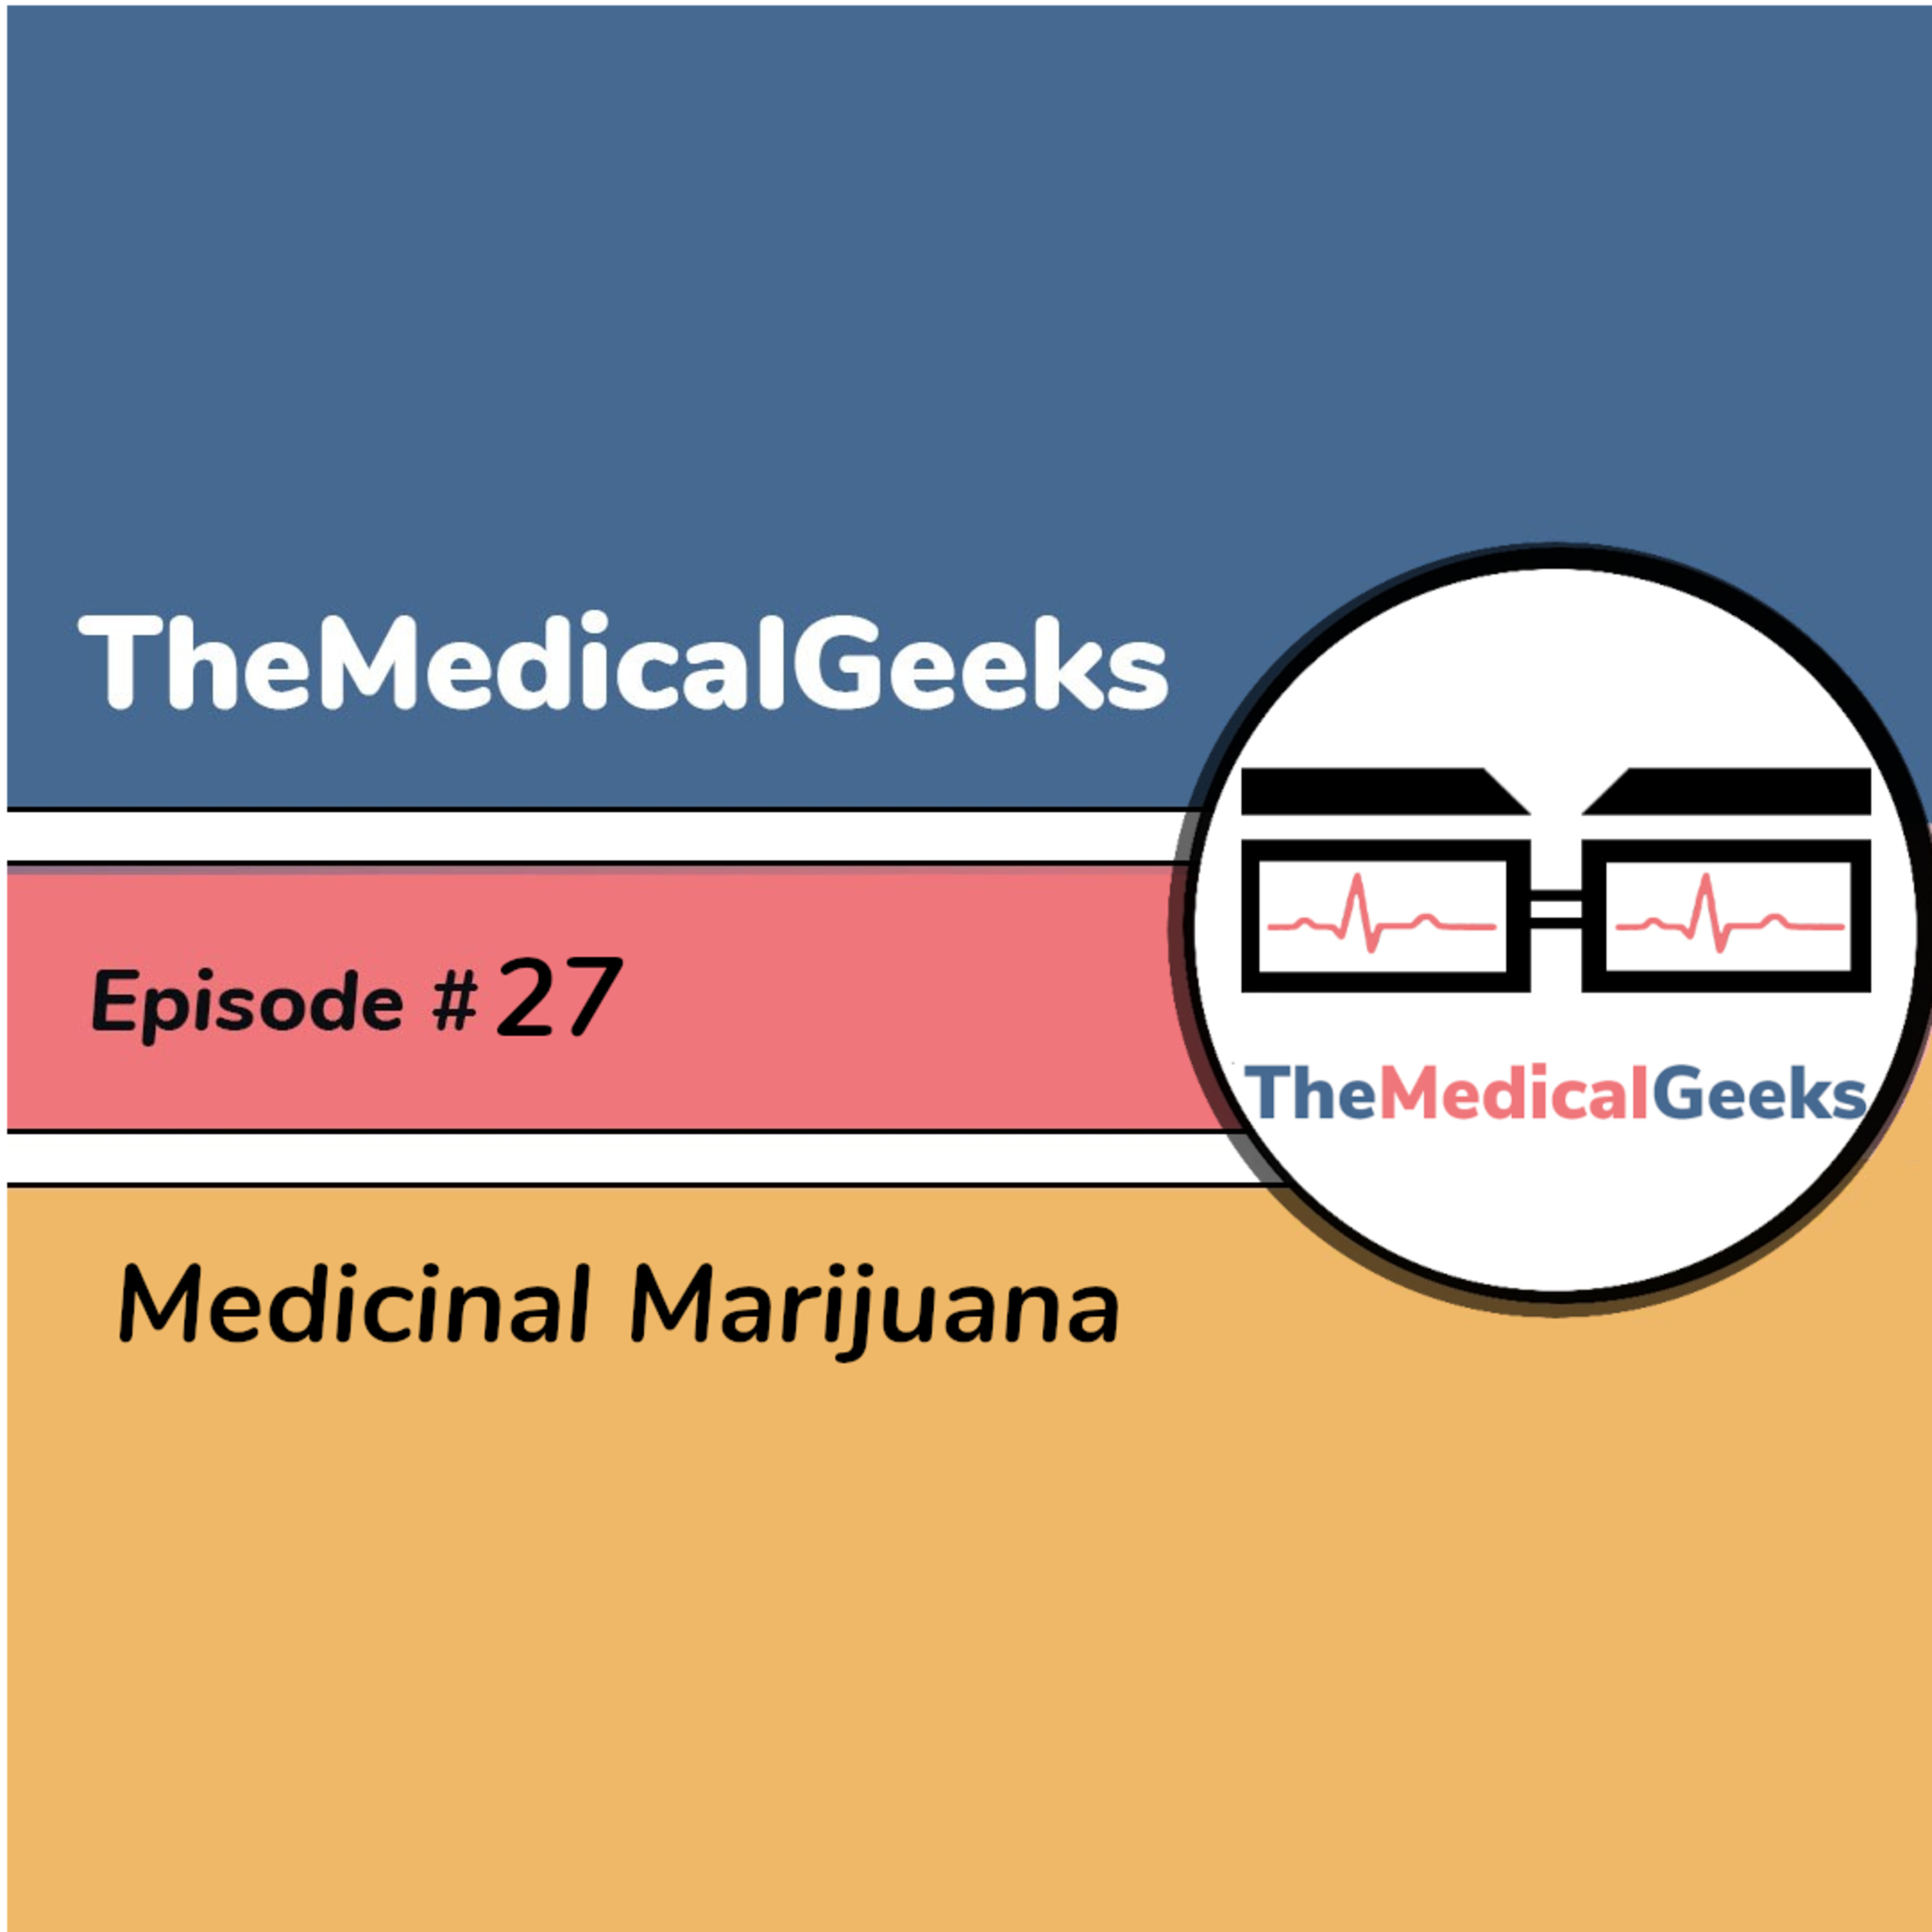 #27 Episode 27: Medicinal Marijuana